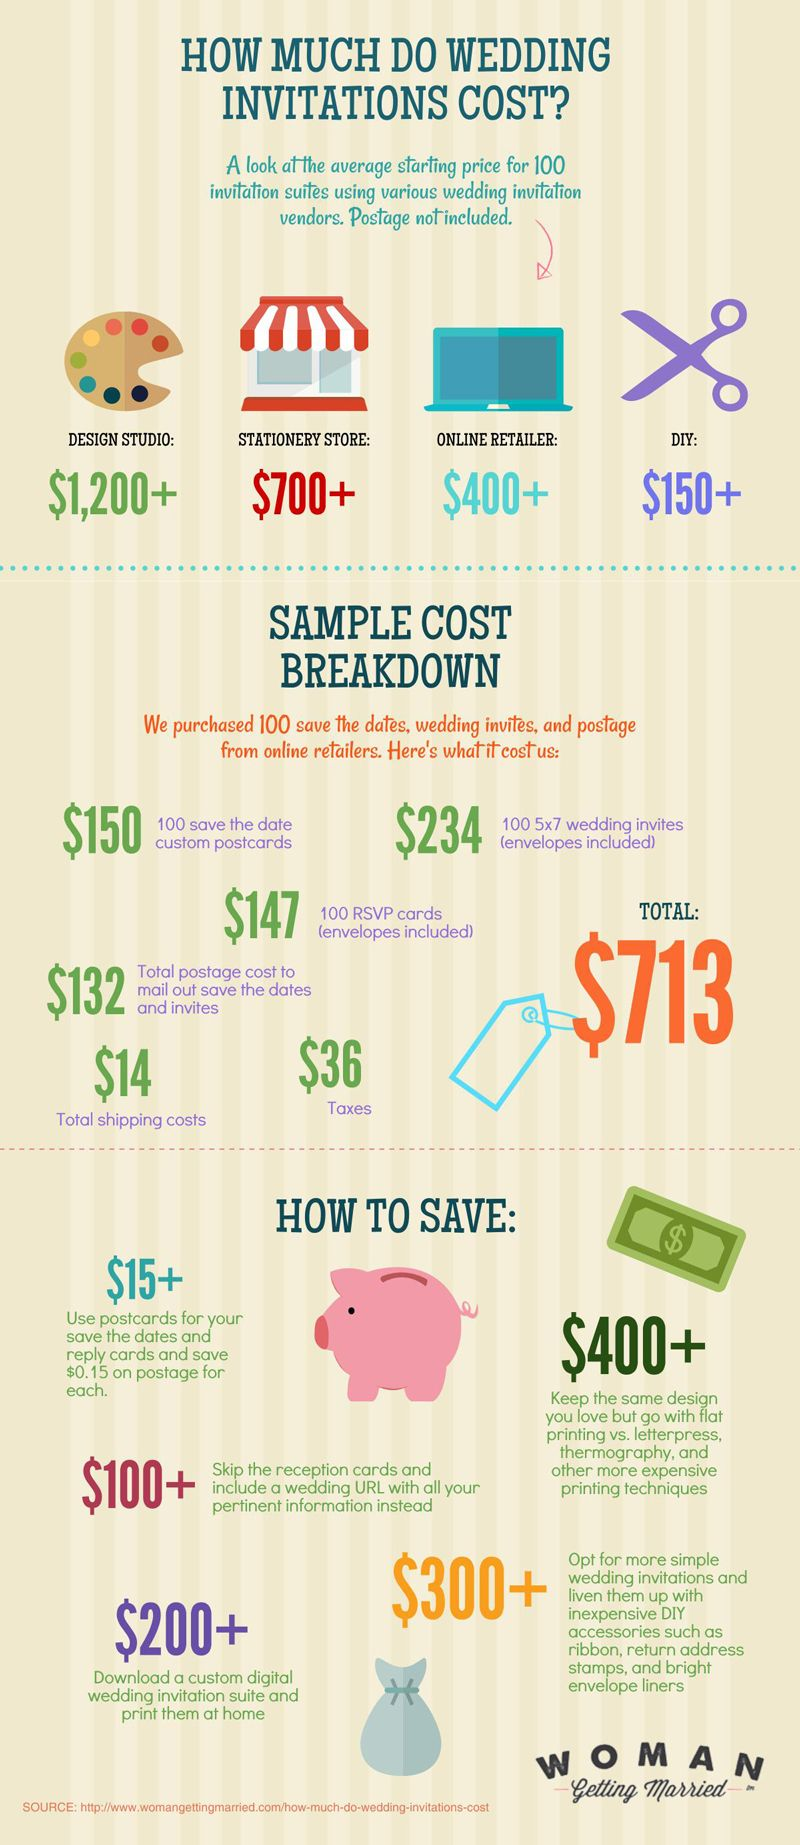 How Much Do Wedding Invitations Cost? | Wedding Invitations ...